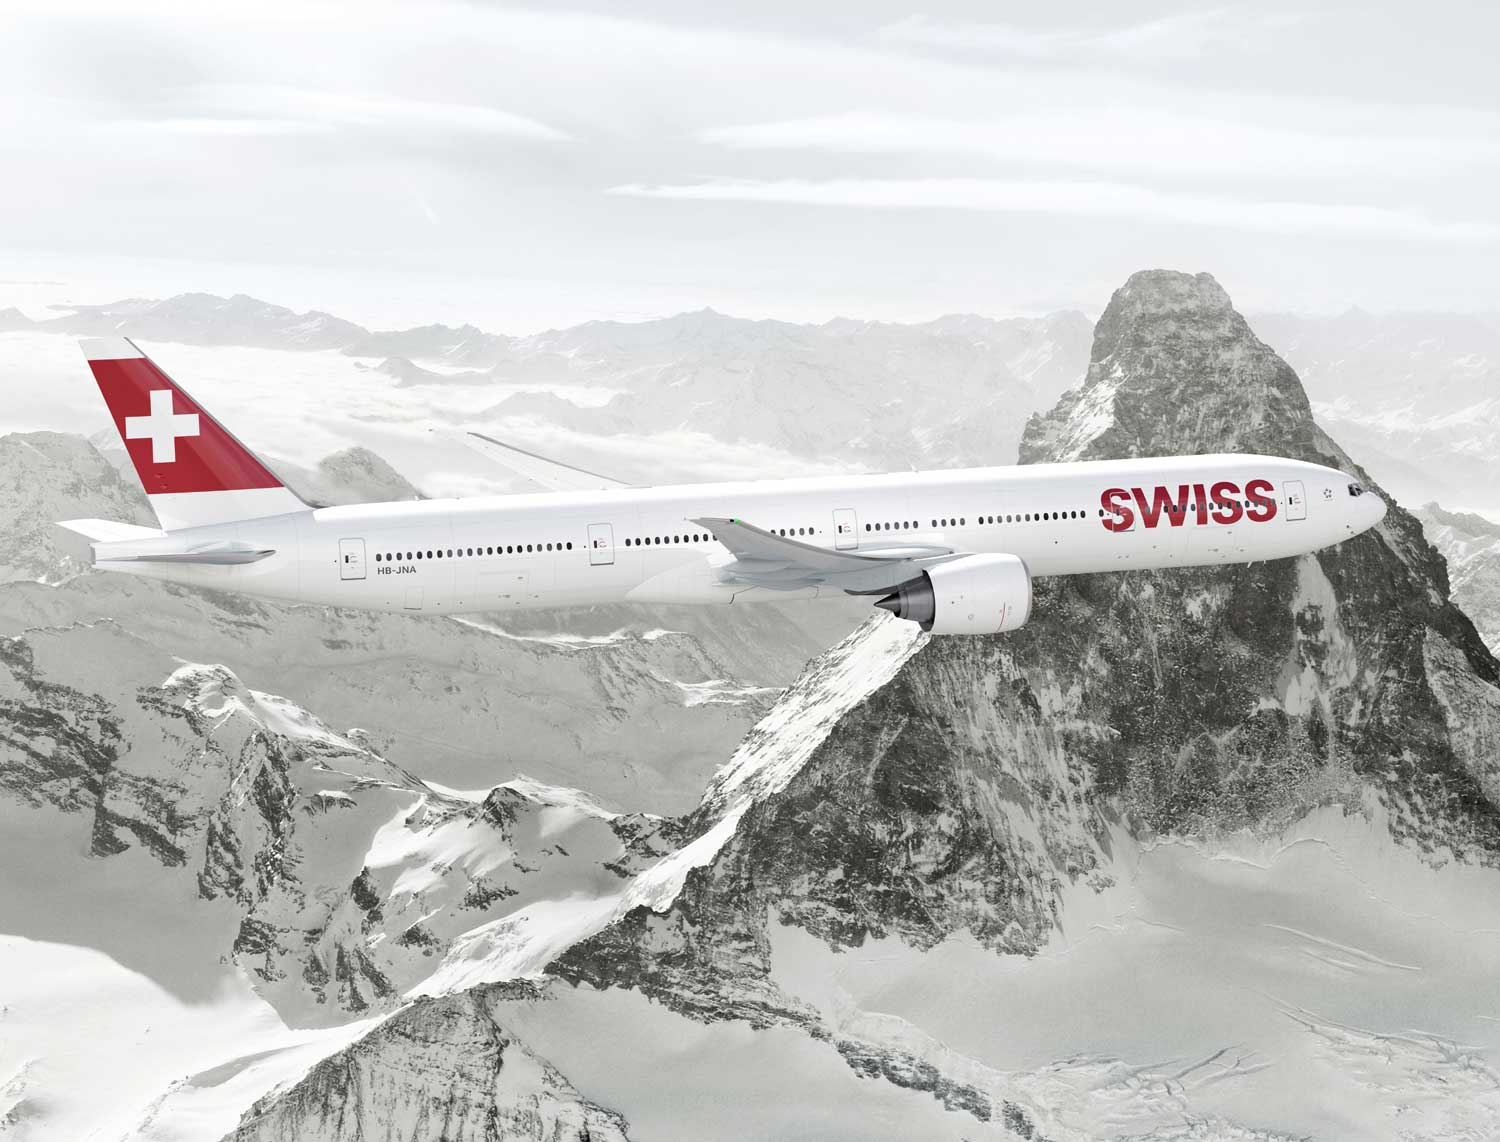 Swiss International Boeing 777-300ER (c) Swiss International Air Lines Ltd